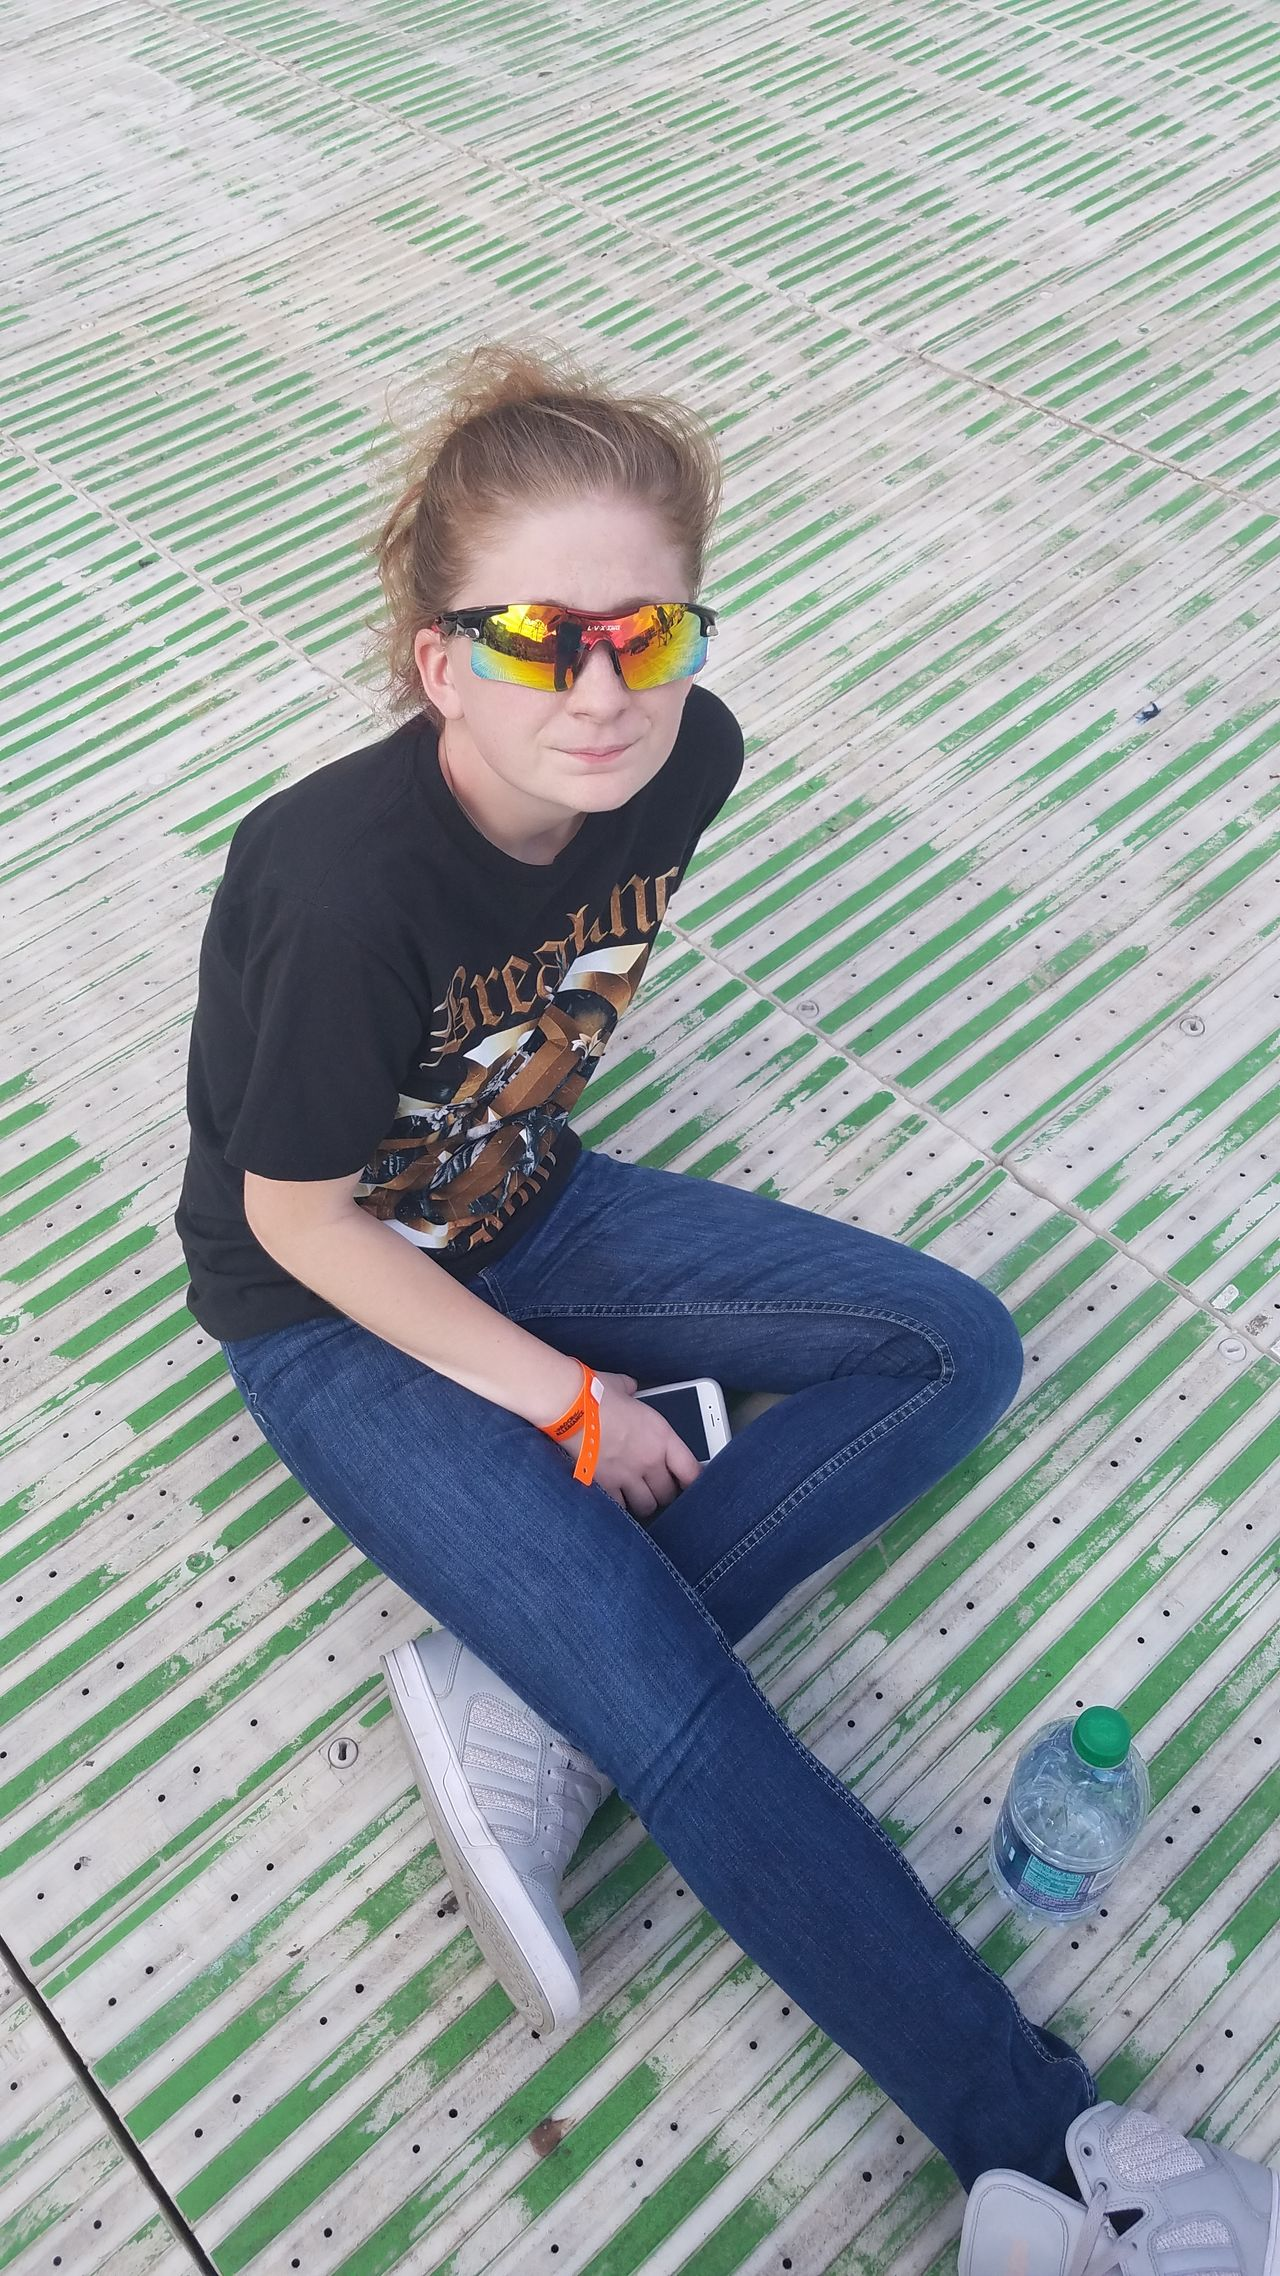 Sitting Casual Clothing Sunglasses Person Young Adult Rock N Roll Music Festival Enjoyment Green Color Resting